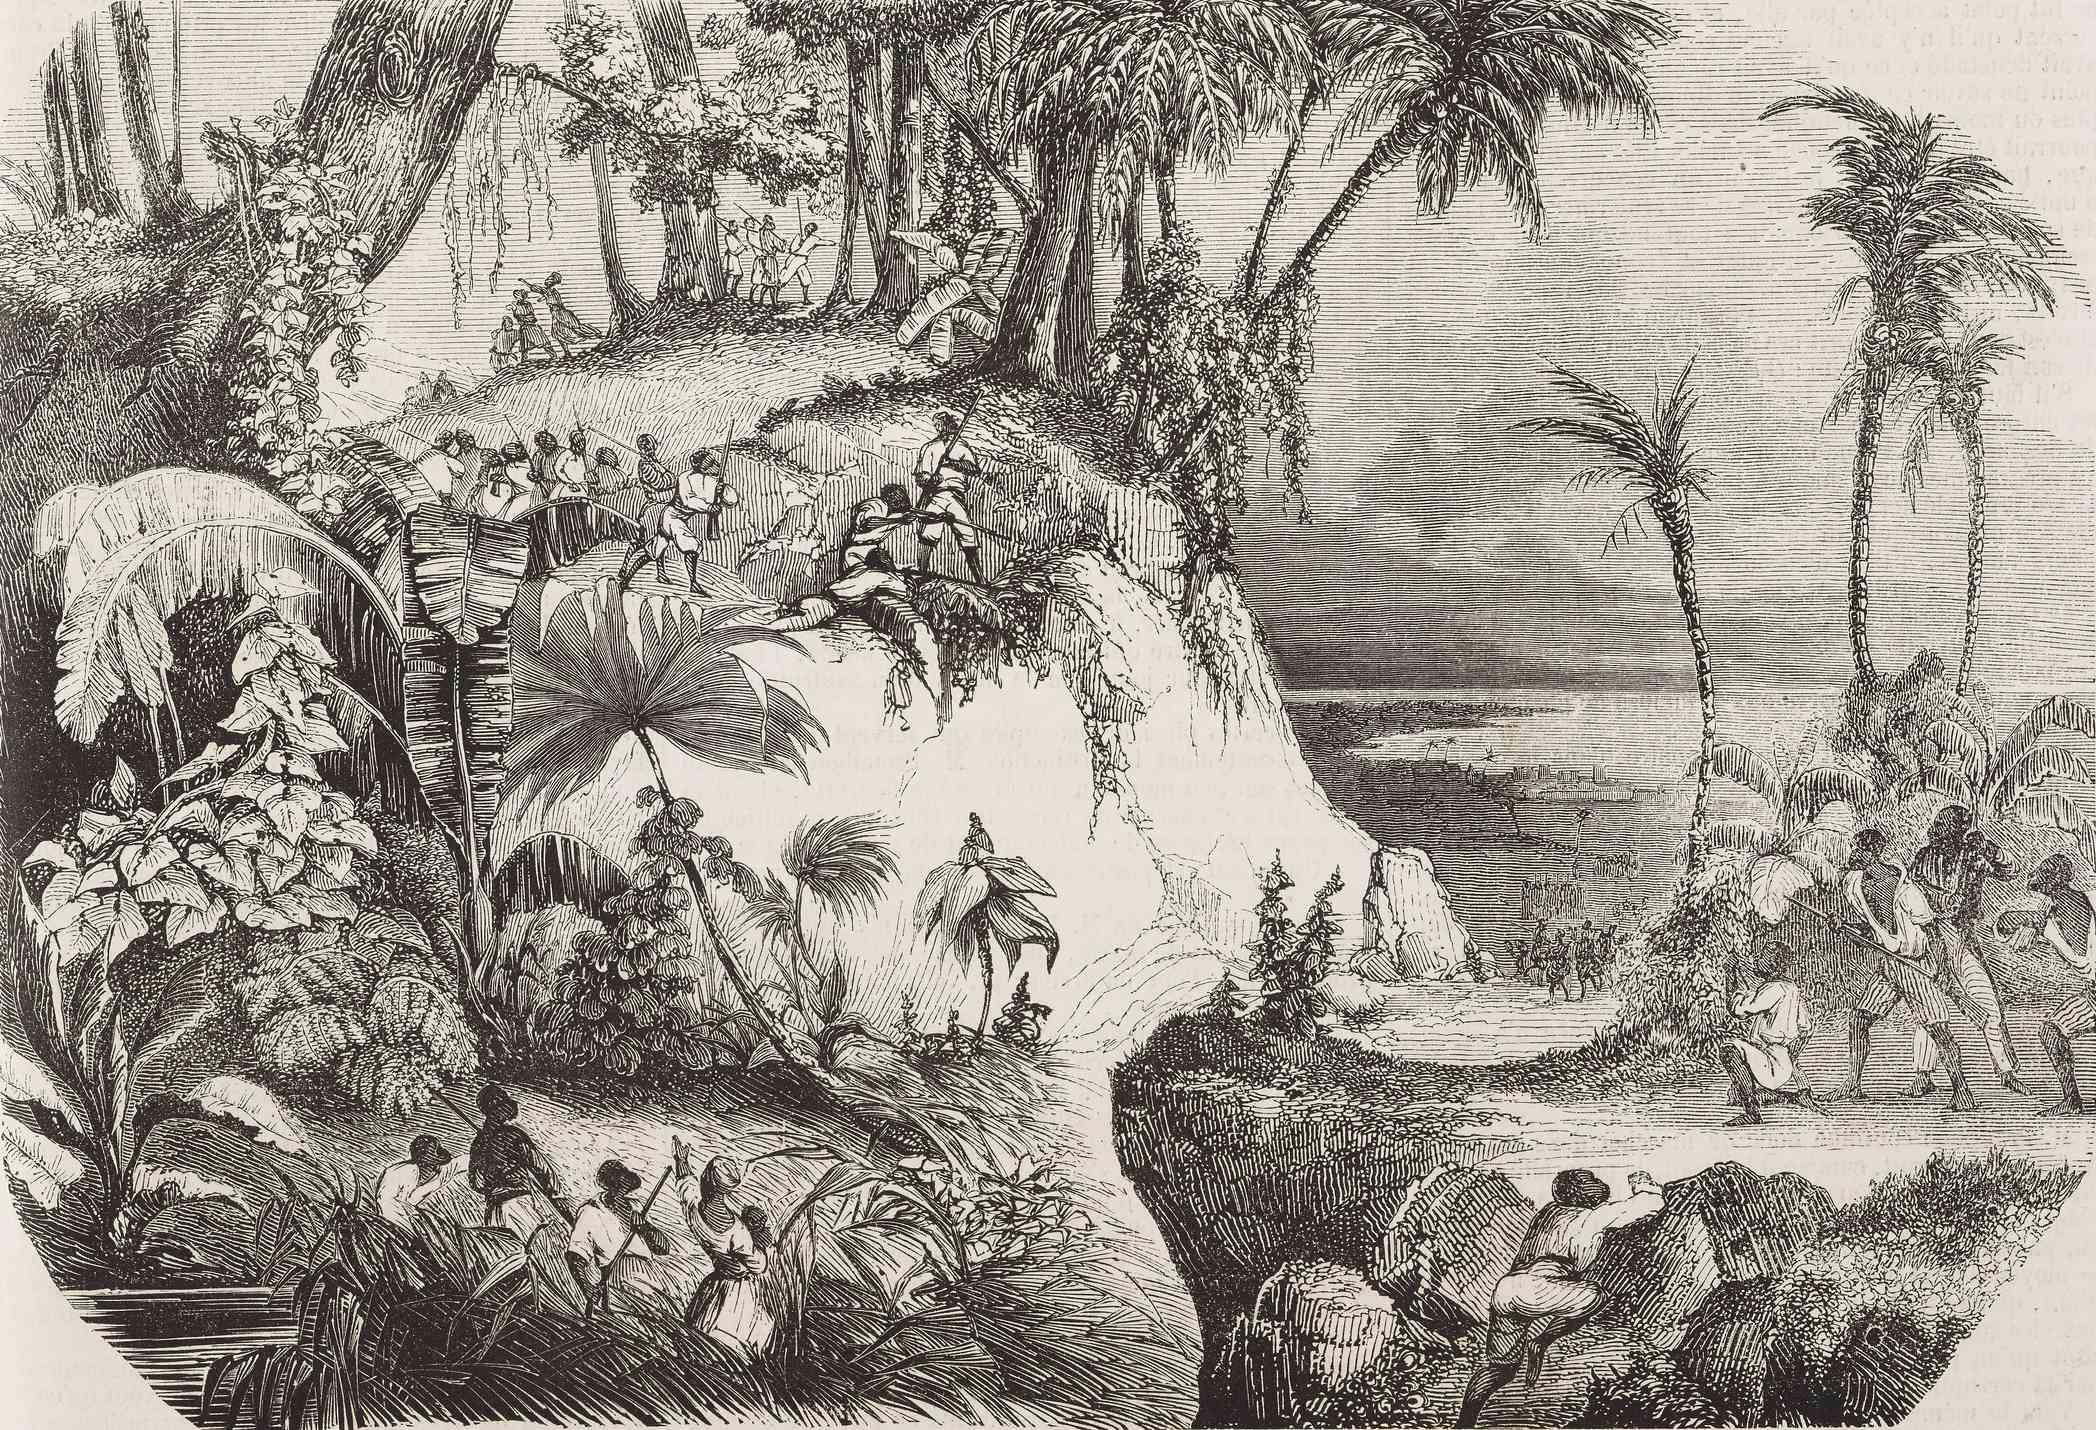 ambushing troops in a forest during the Haitian revolution